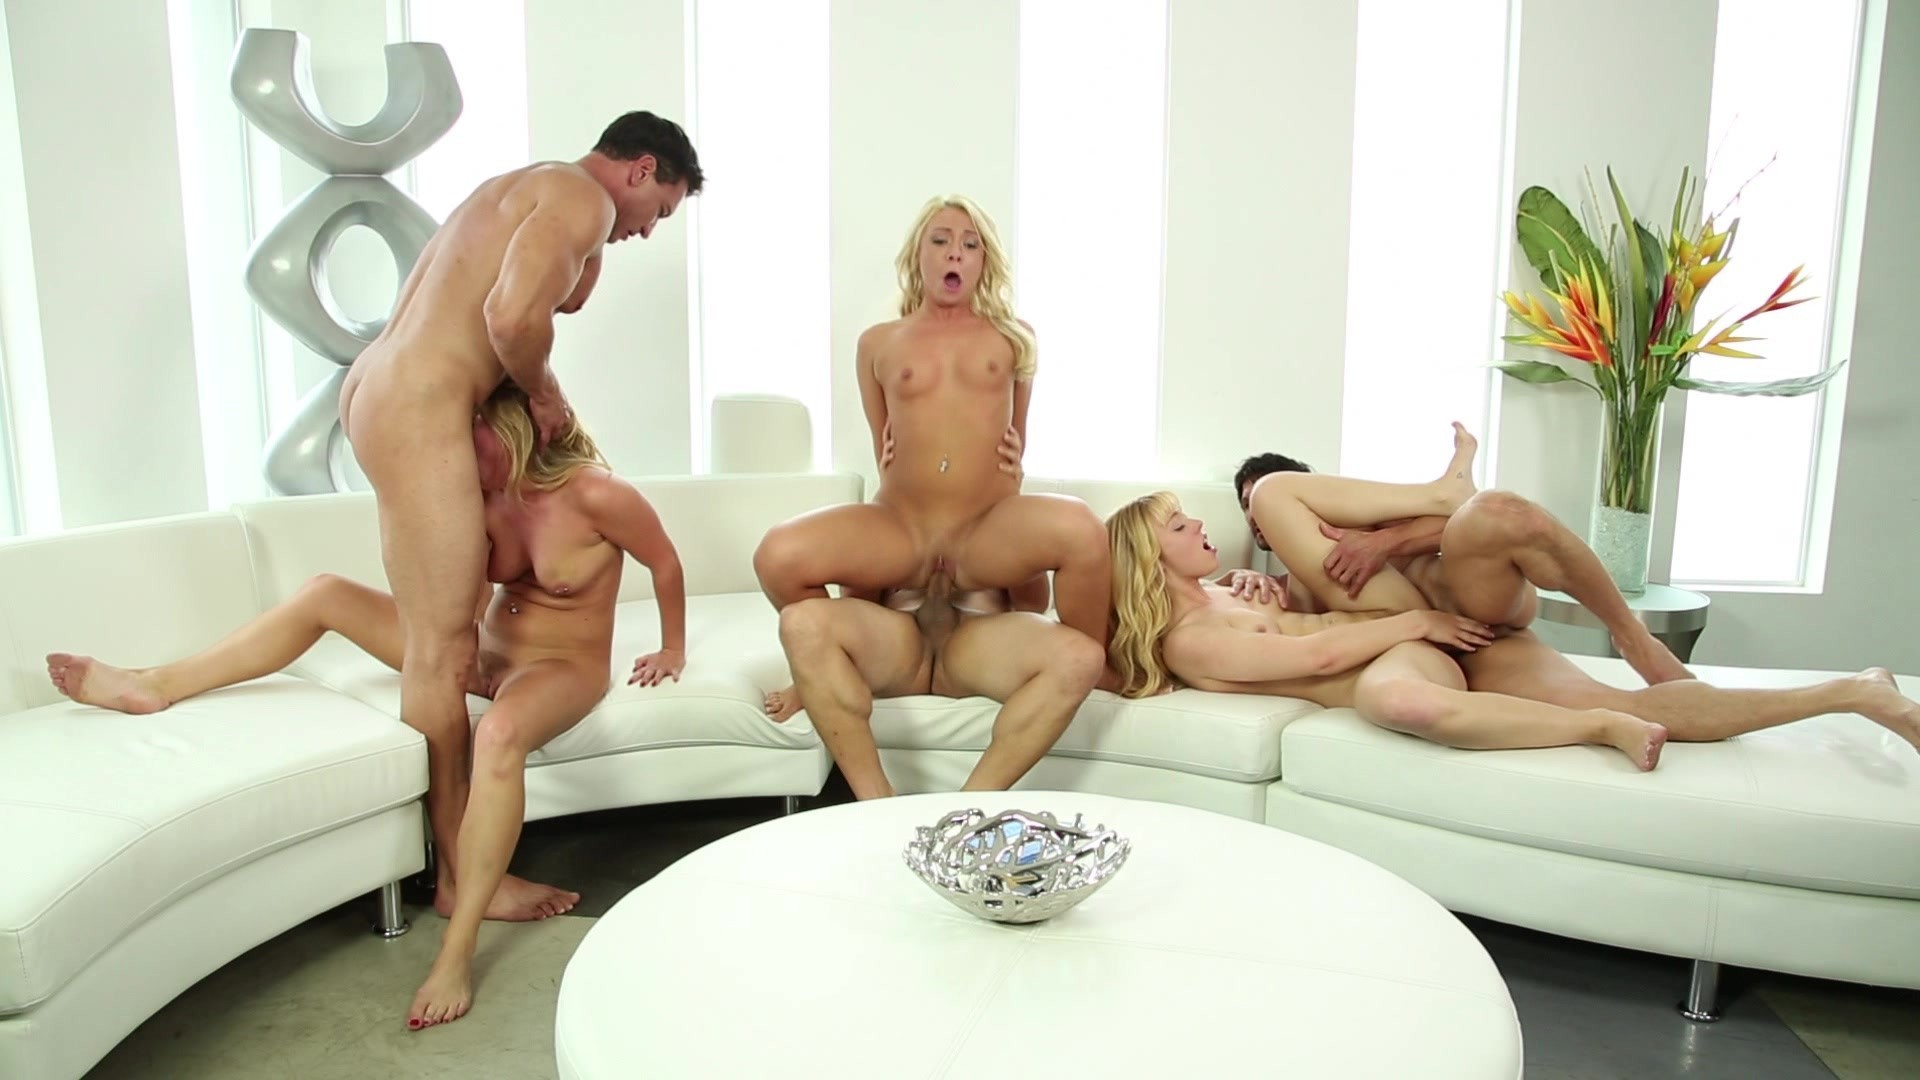 Adult swingers luvin lucy lucy tyler - Nevid Porn Tube